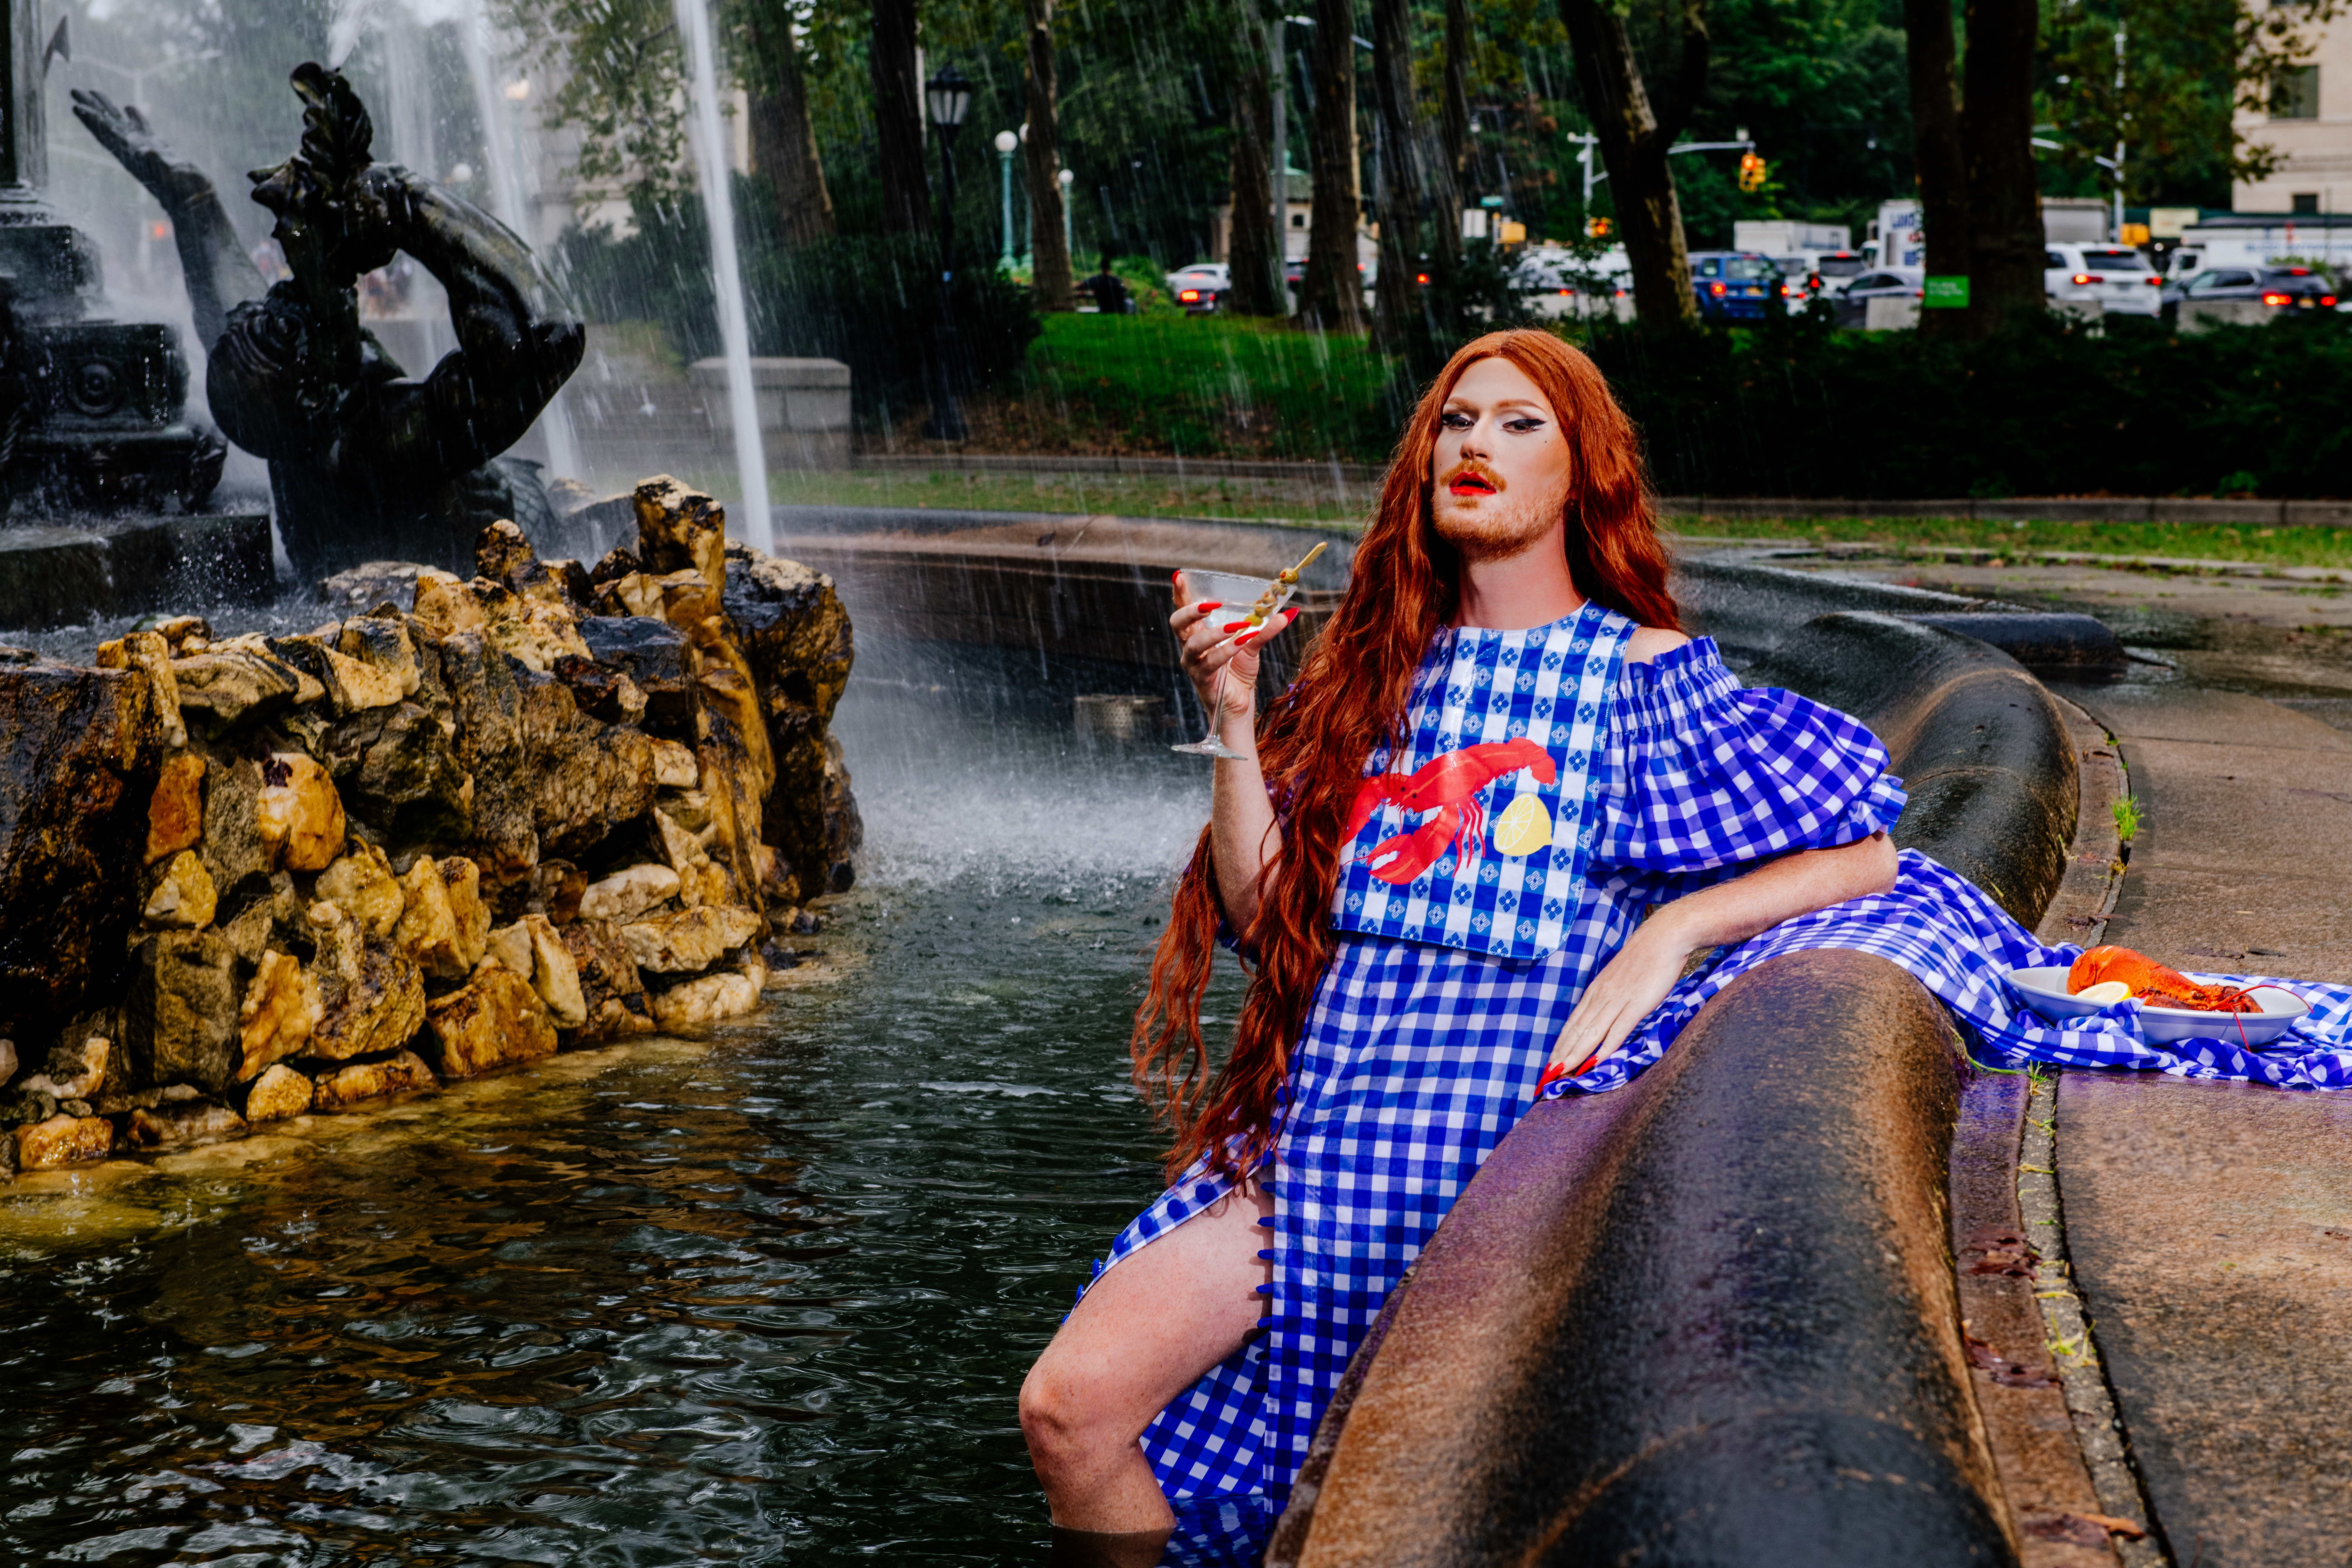 A drag queen wearing a gingham bib with a lobster motif and holding a martini lounges in a fountain